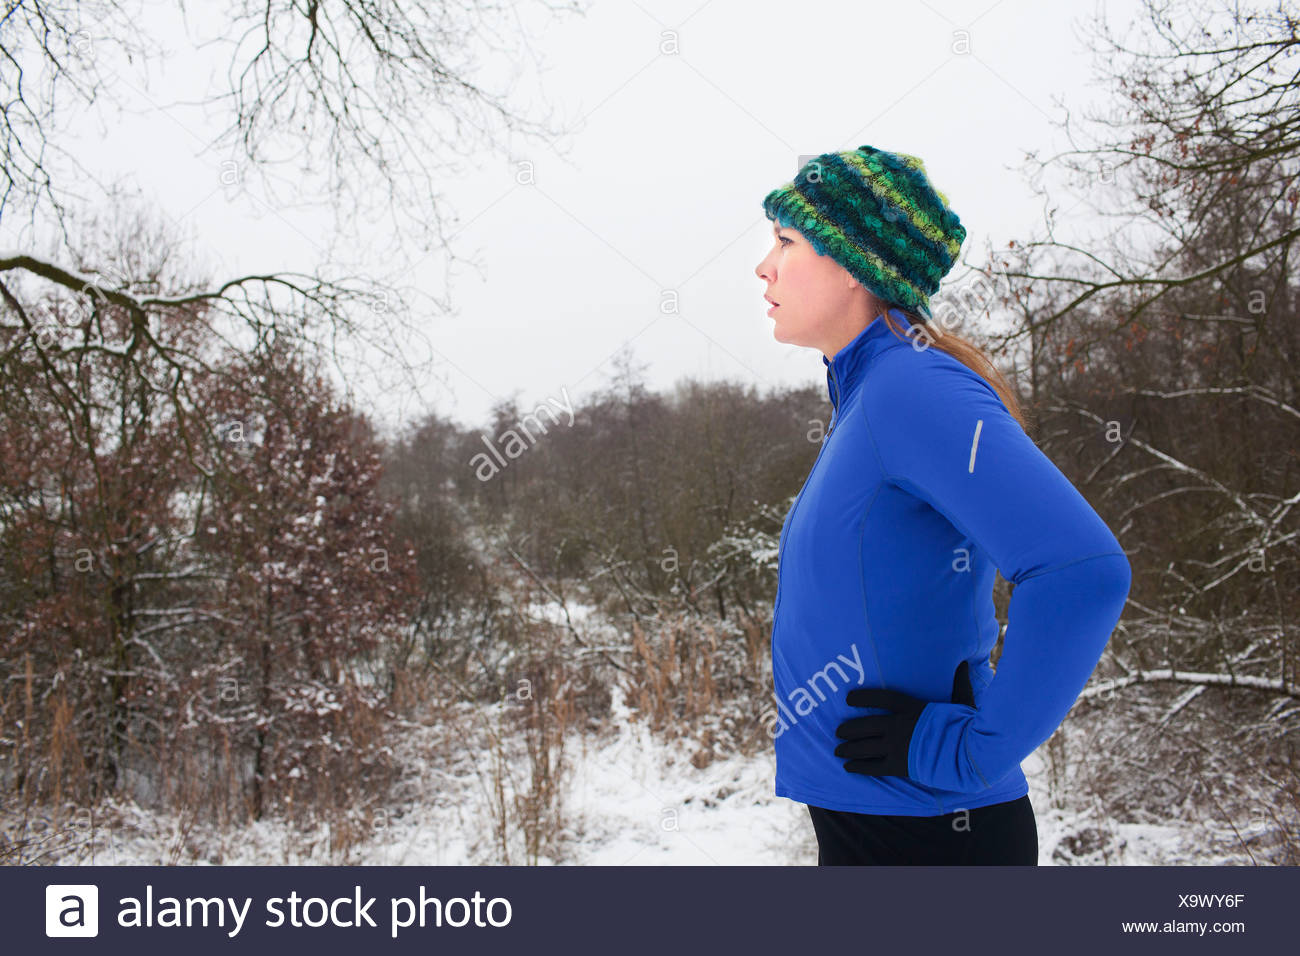 Female runner taking a break in winter scene - Stock Image